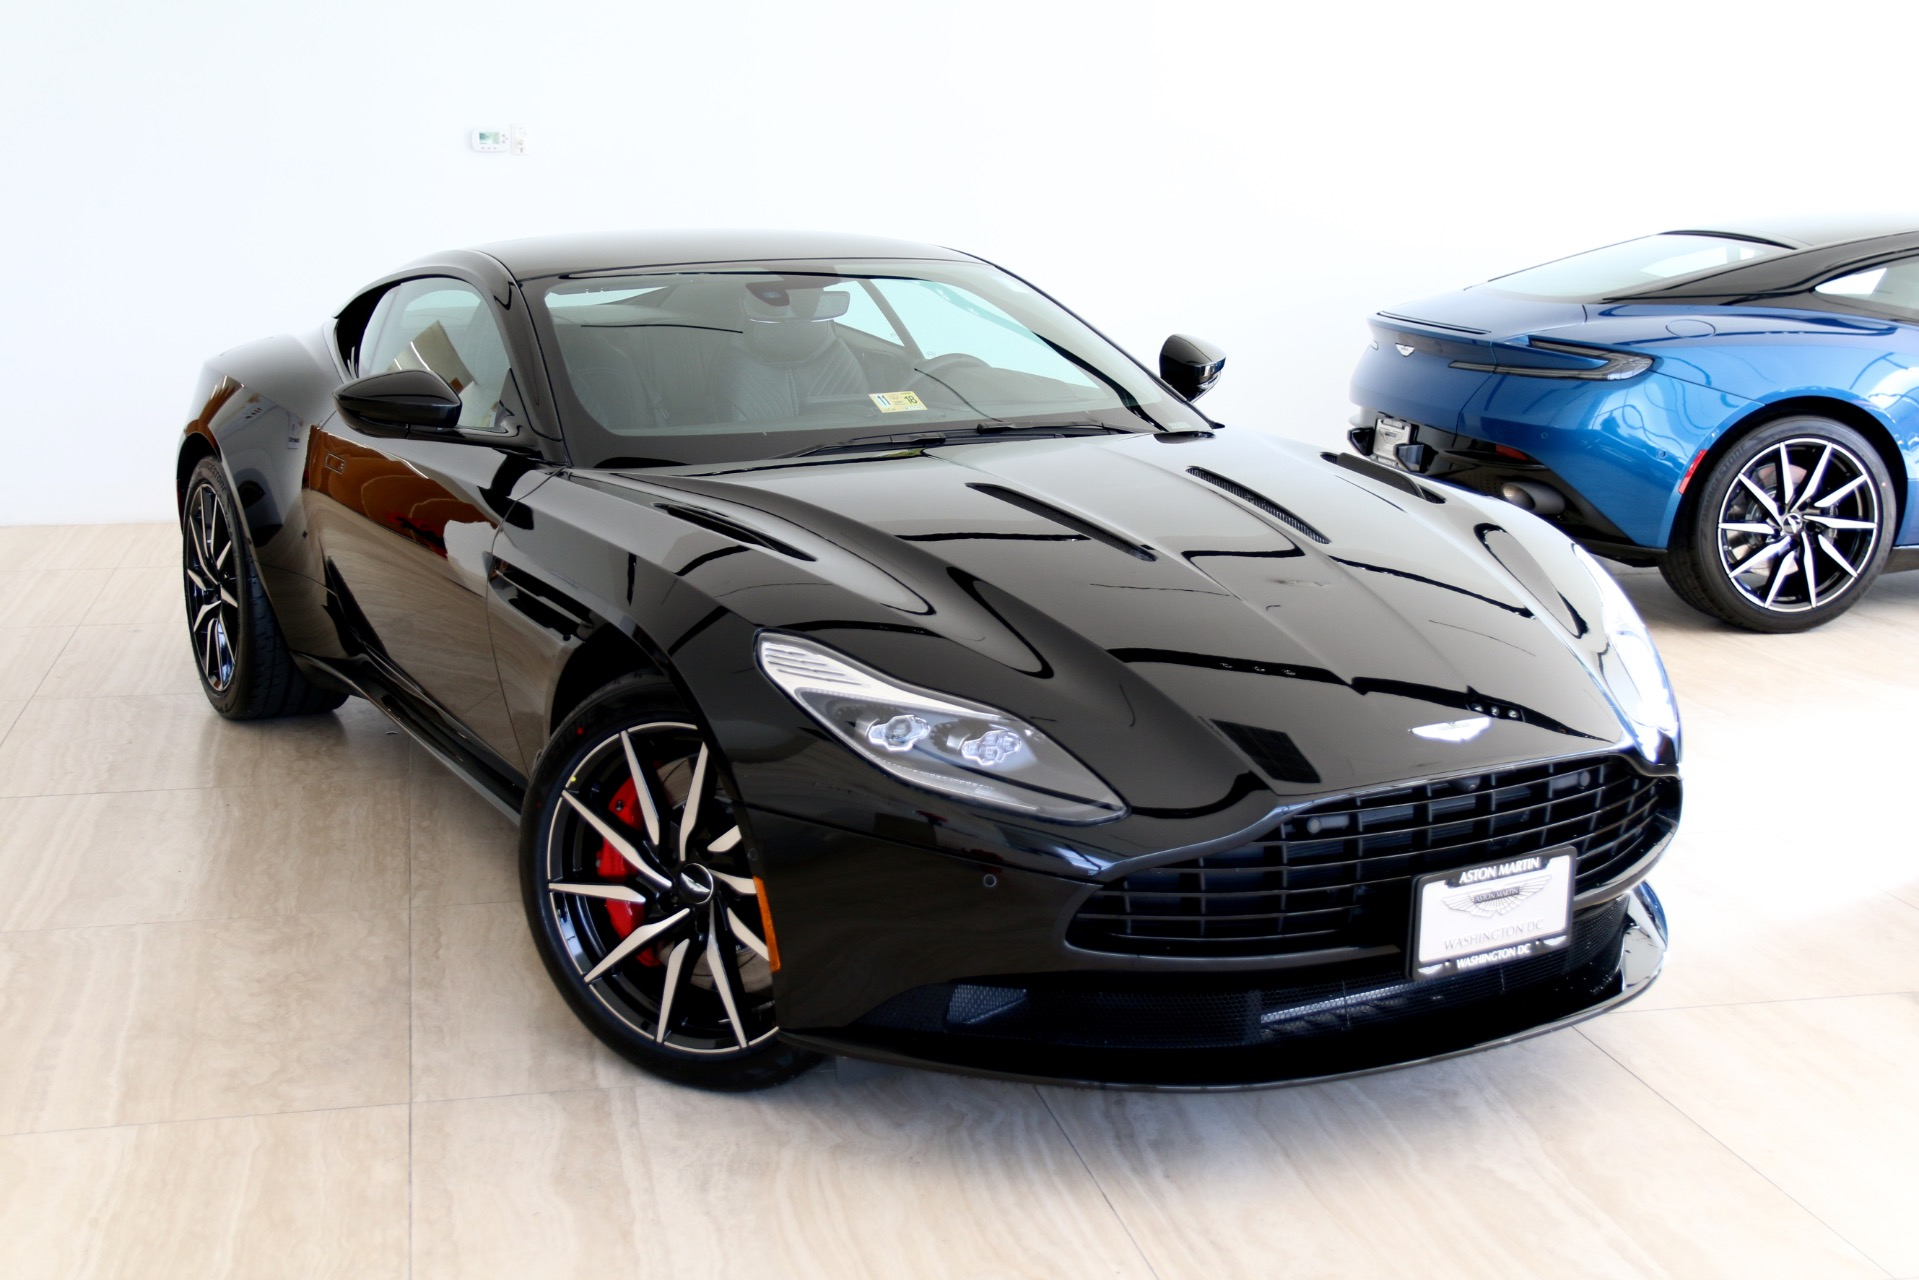 2018 aston martin db11 v12 stock # 8l03667 for sale near vienna, va